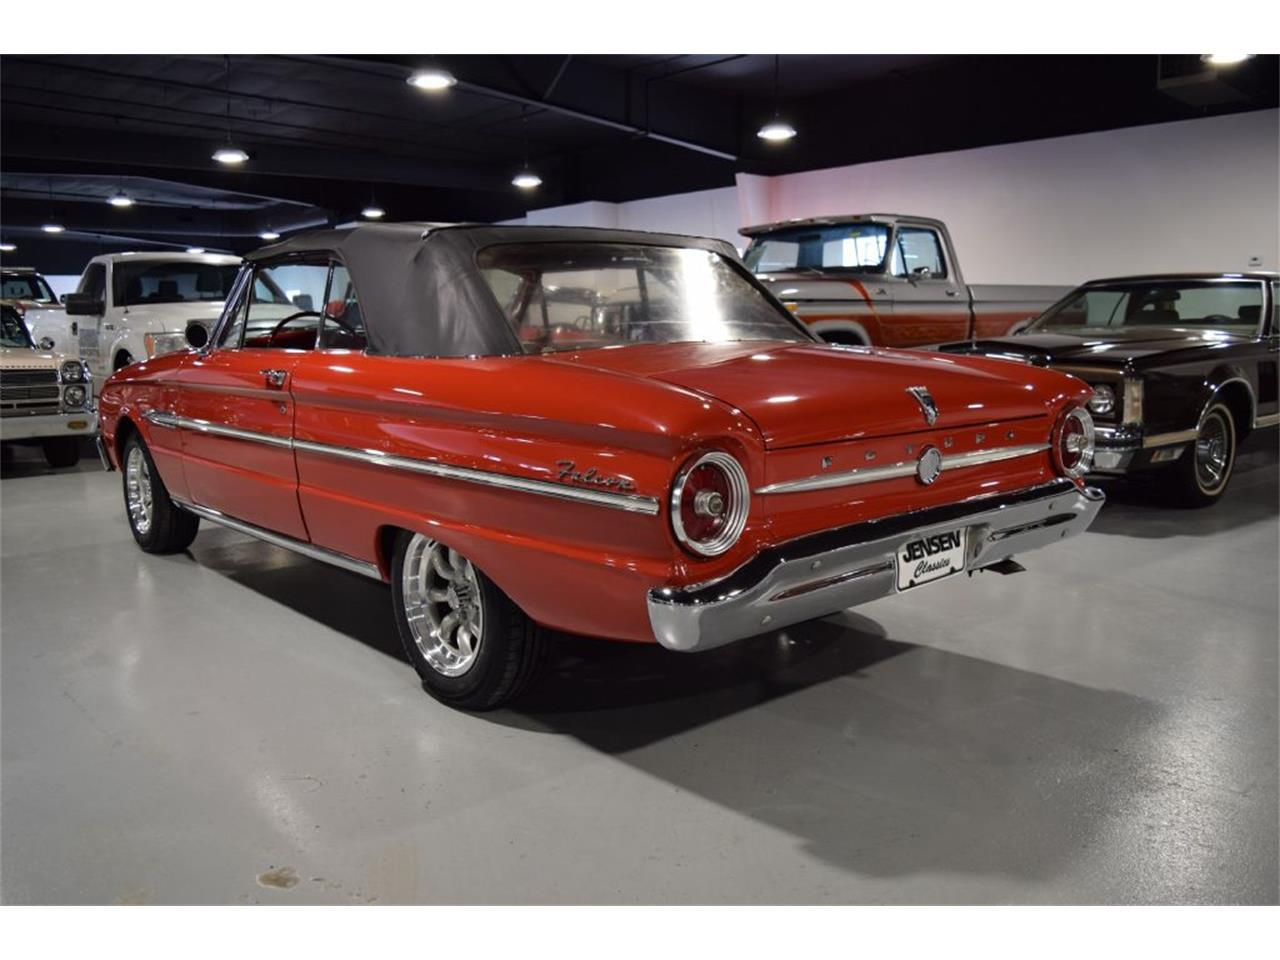 1963 Ford Falcon Futura for sale in Sioux City, IA – photo 13